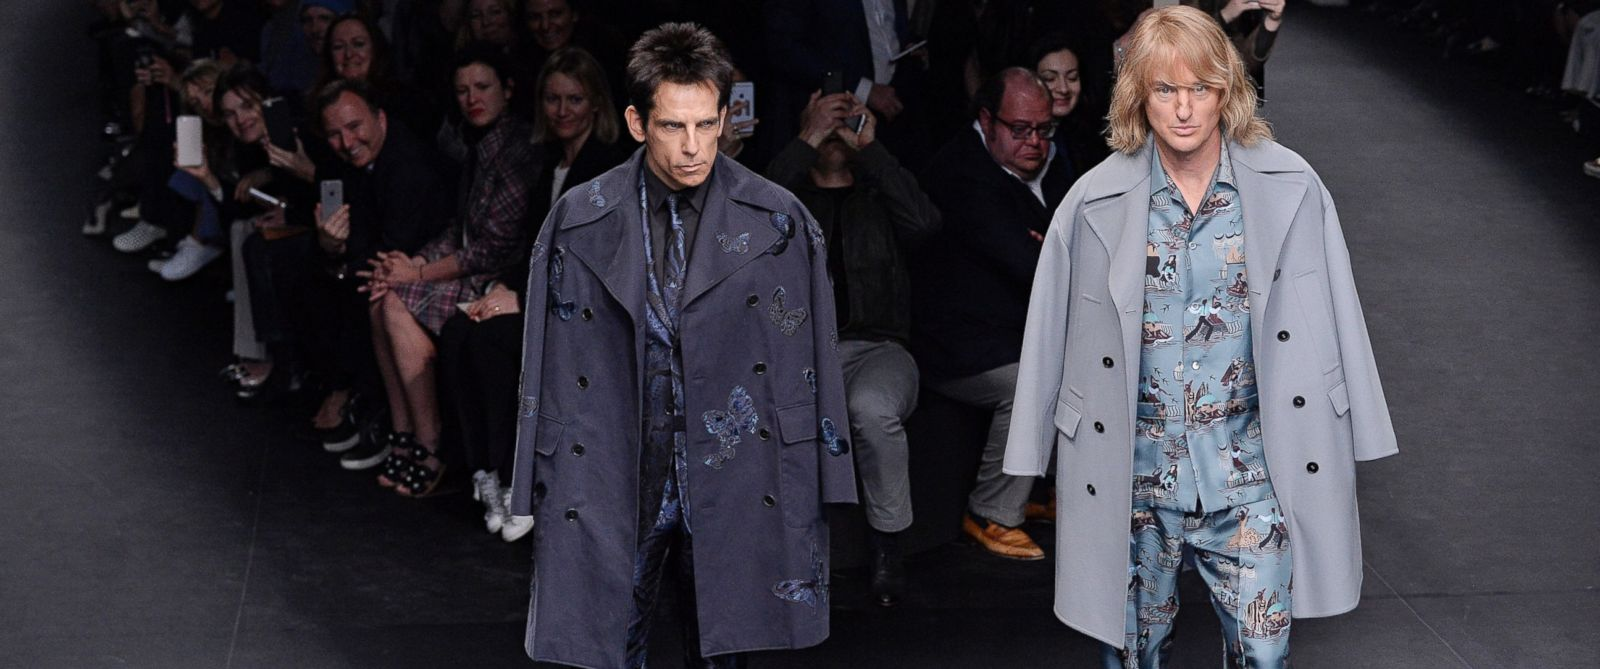 PHOTO: Zoolander stars Ben Stiller (L) and Owen Wilson (R) walk the runway at the Valentino Autumn Winter 2015 fashion show during Paris Fashion Week on March 10, 2015 in Paris.